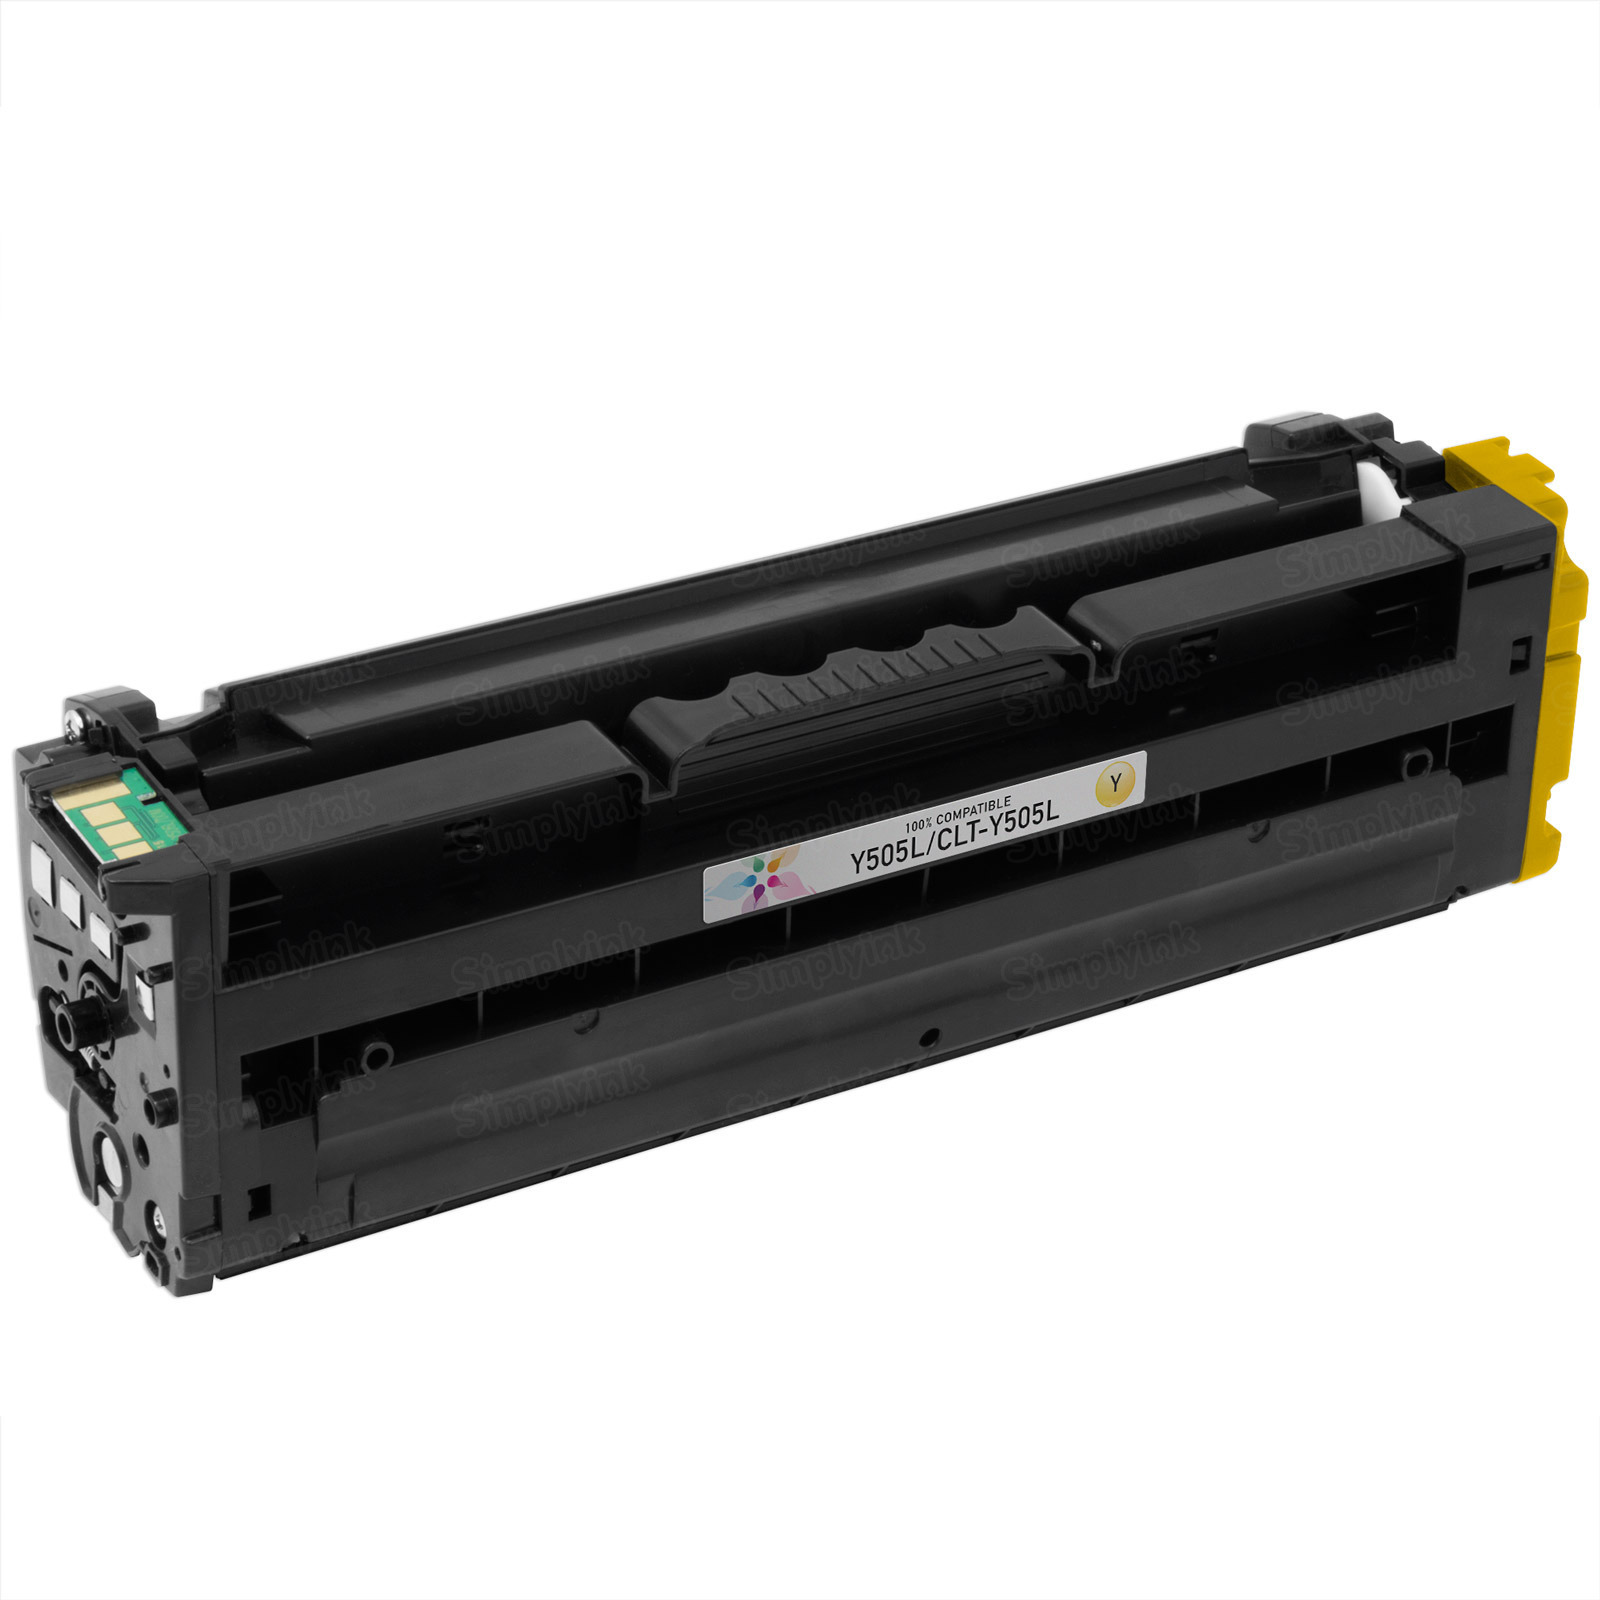 Compatible Yellow Toner for Samsung Y505L